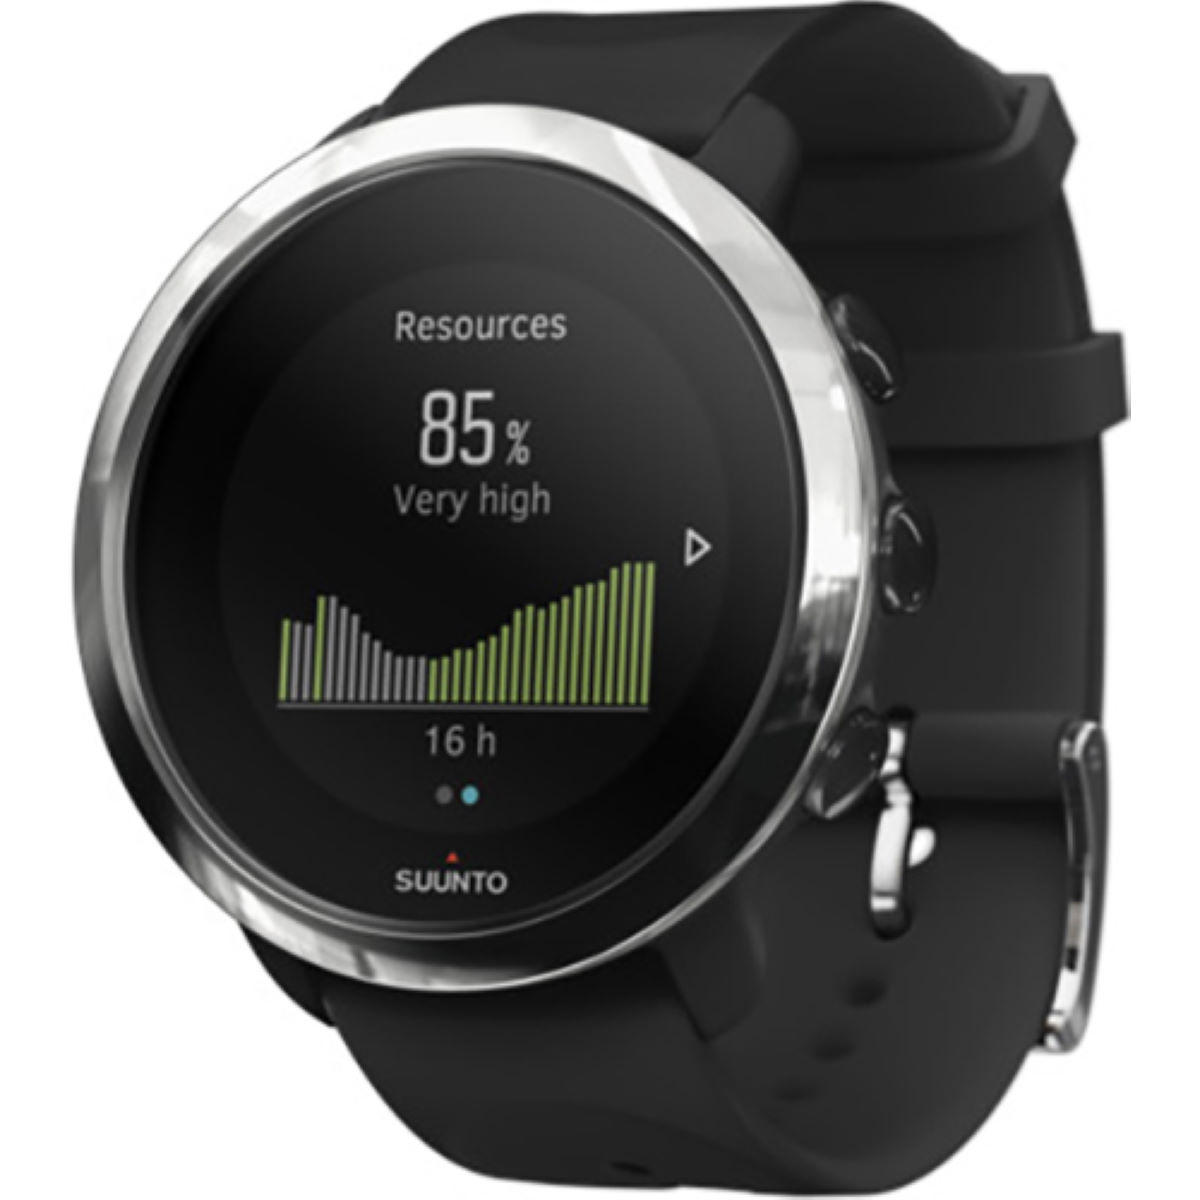 Suunto 3 Fitness Watch - Relojes